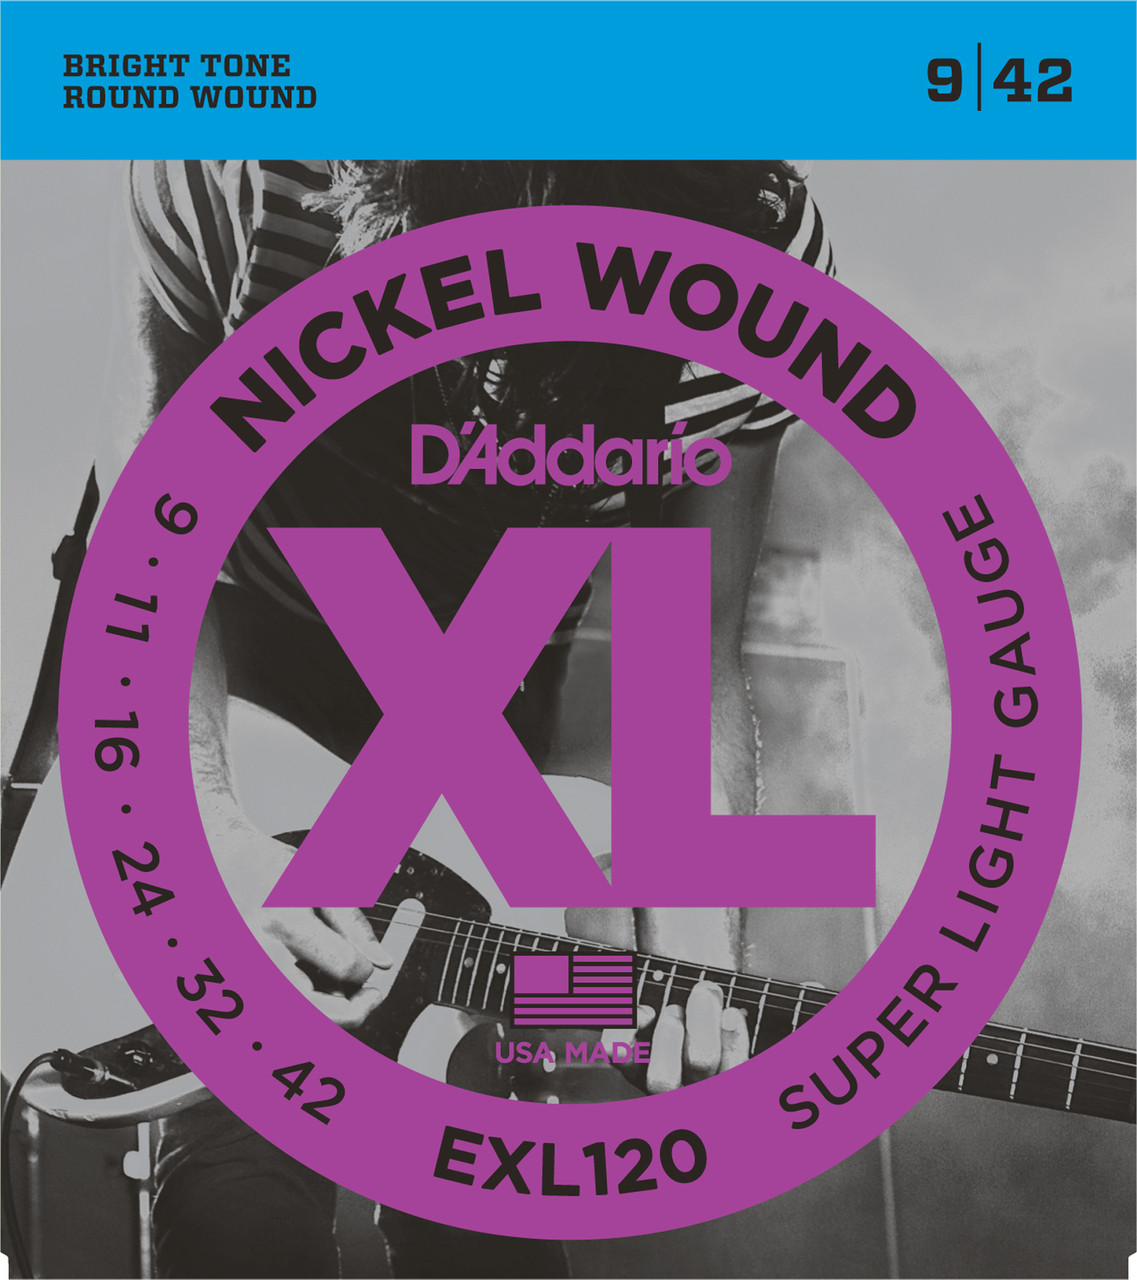 D'addario EXL120 Electric Guitar Strings (09-42)